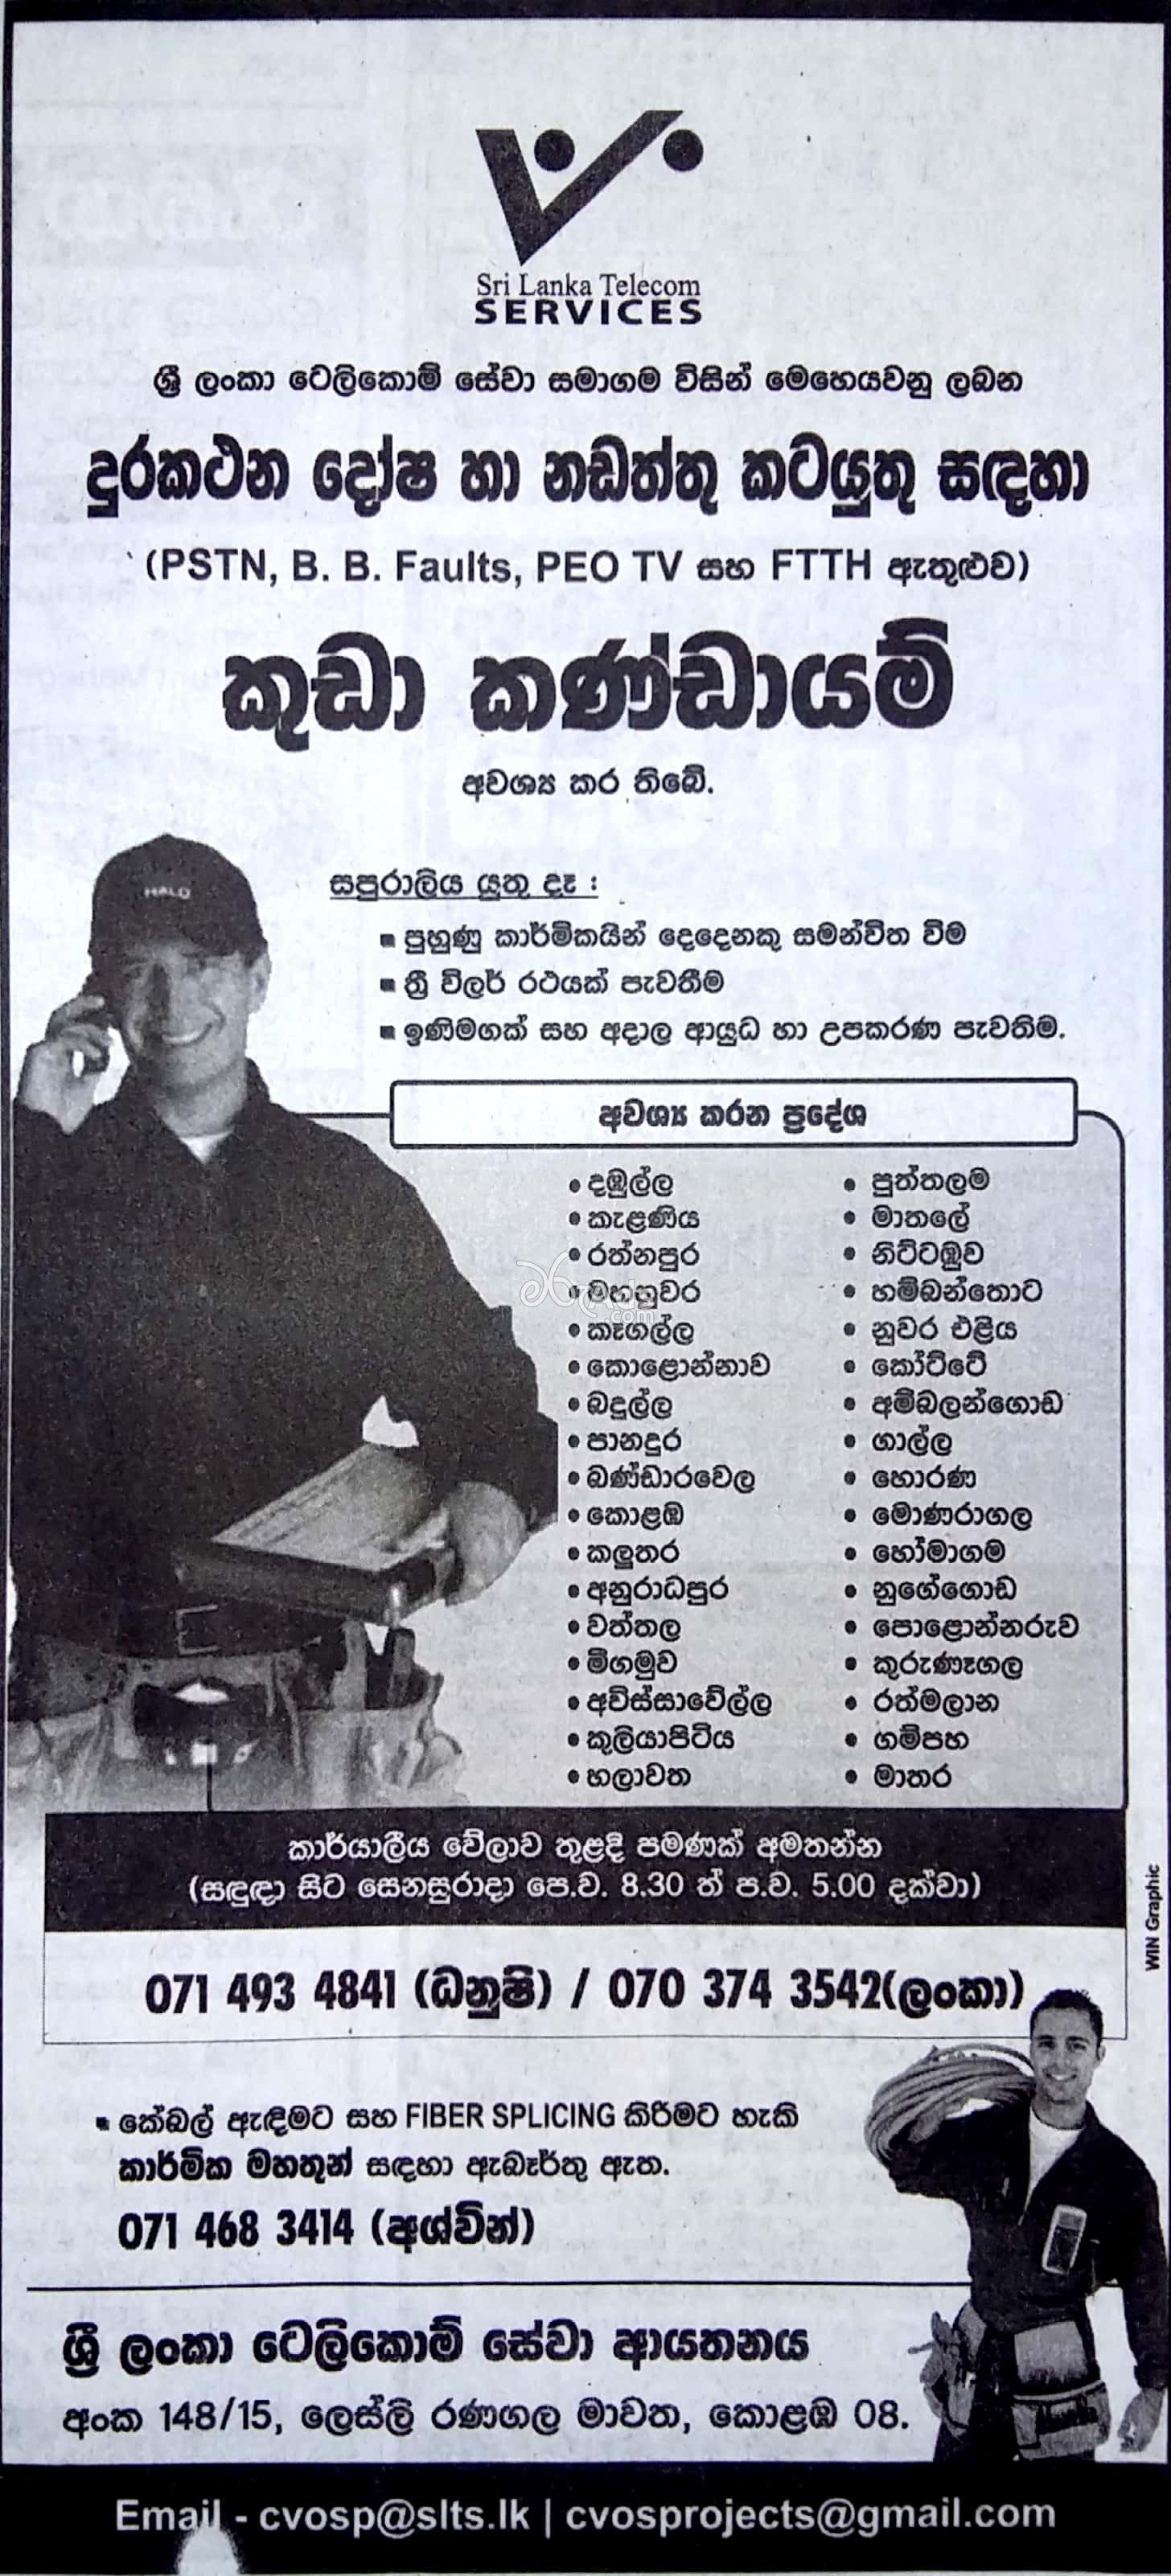 Maintainer Government Vacancy at Sri Lanka Telecom Services